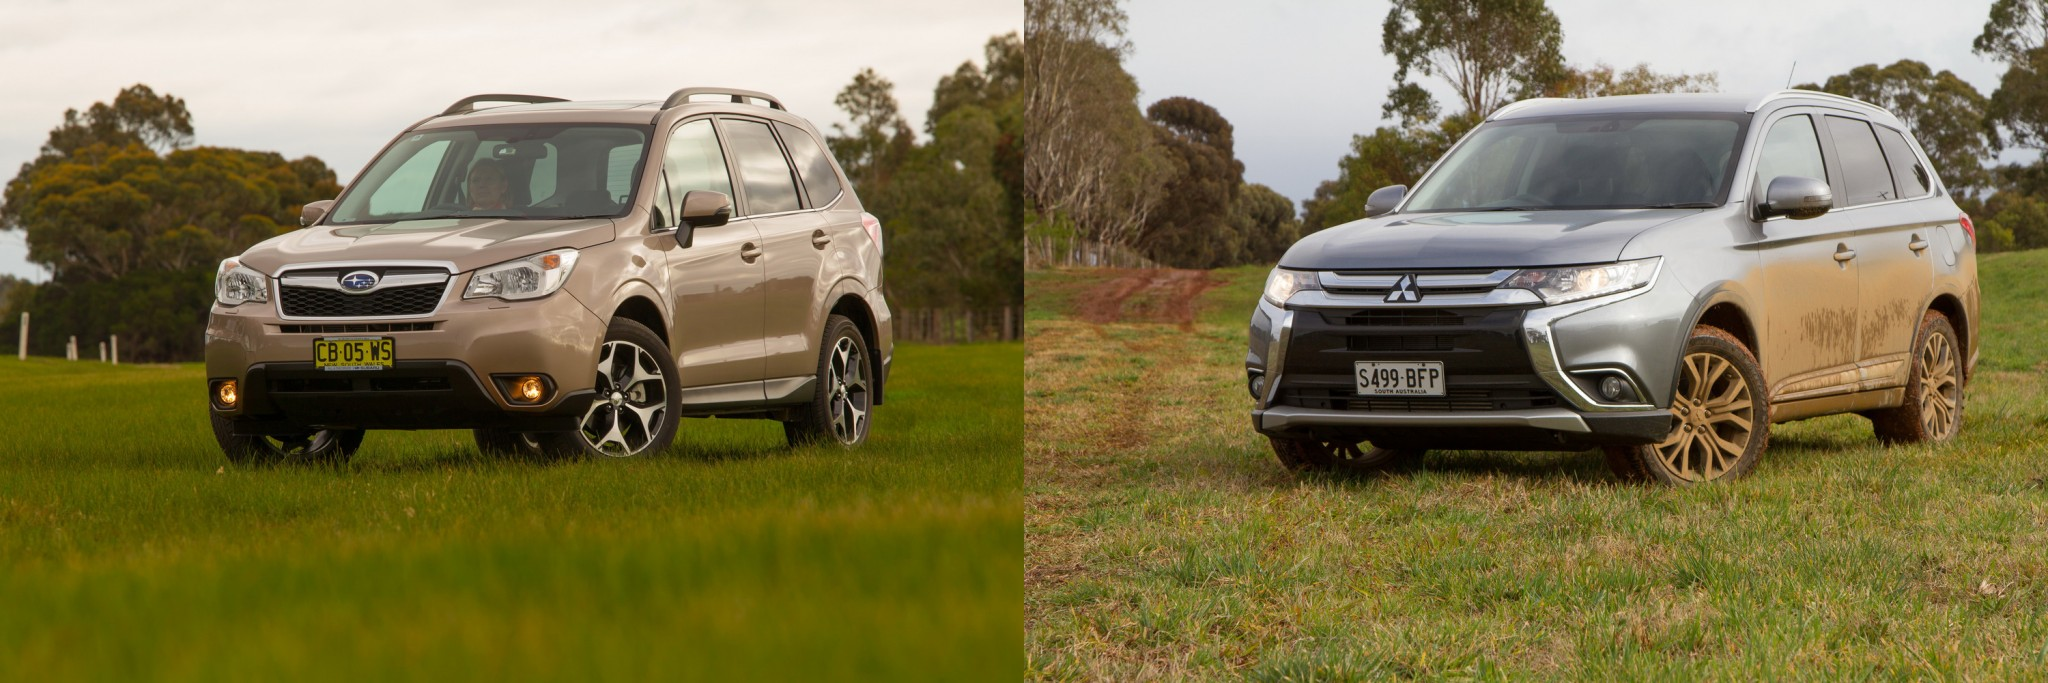 subaru forester vs mitsubishi outlander which should outdoorsy people choose practical motoring. Black Bedroom Furniture Sets. Home Design Ideas